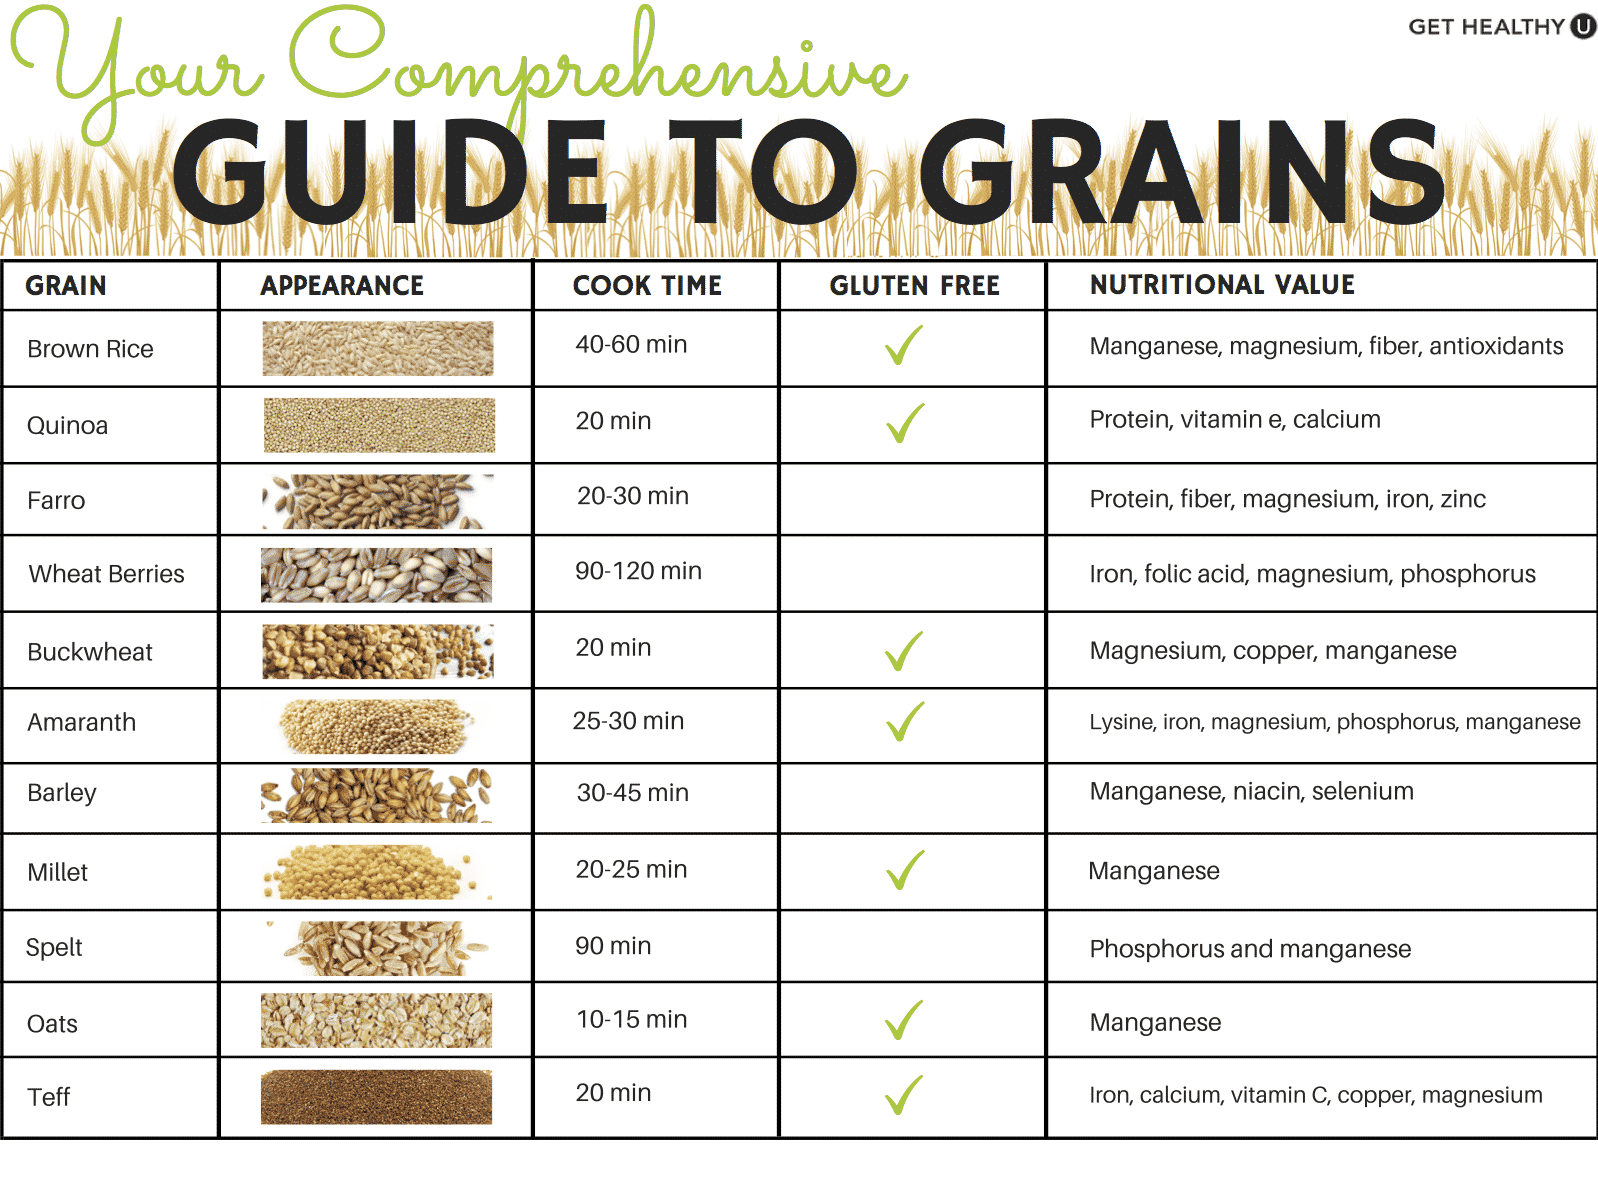 Ever wonder which grains are best for you or which are gluten free? We've got your comprehensive guide to grains all laid out.